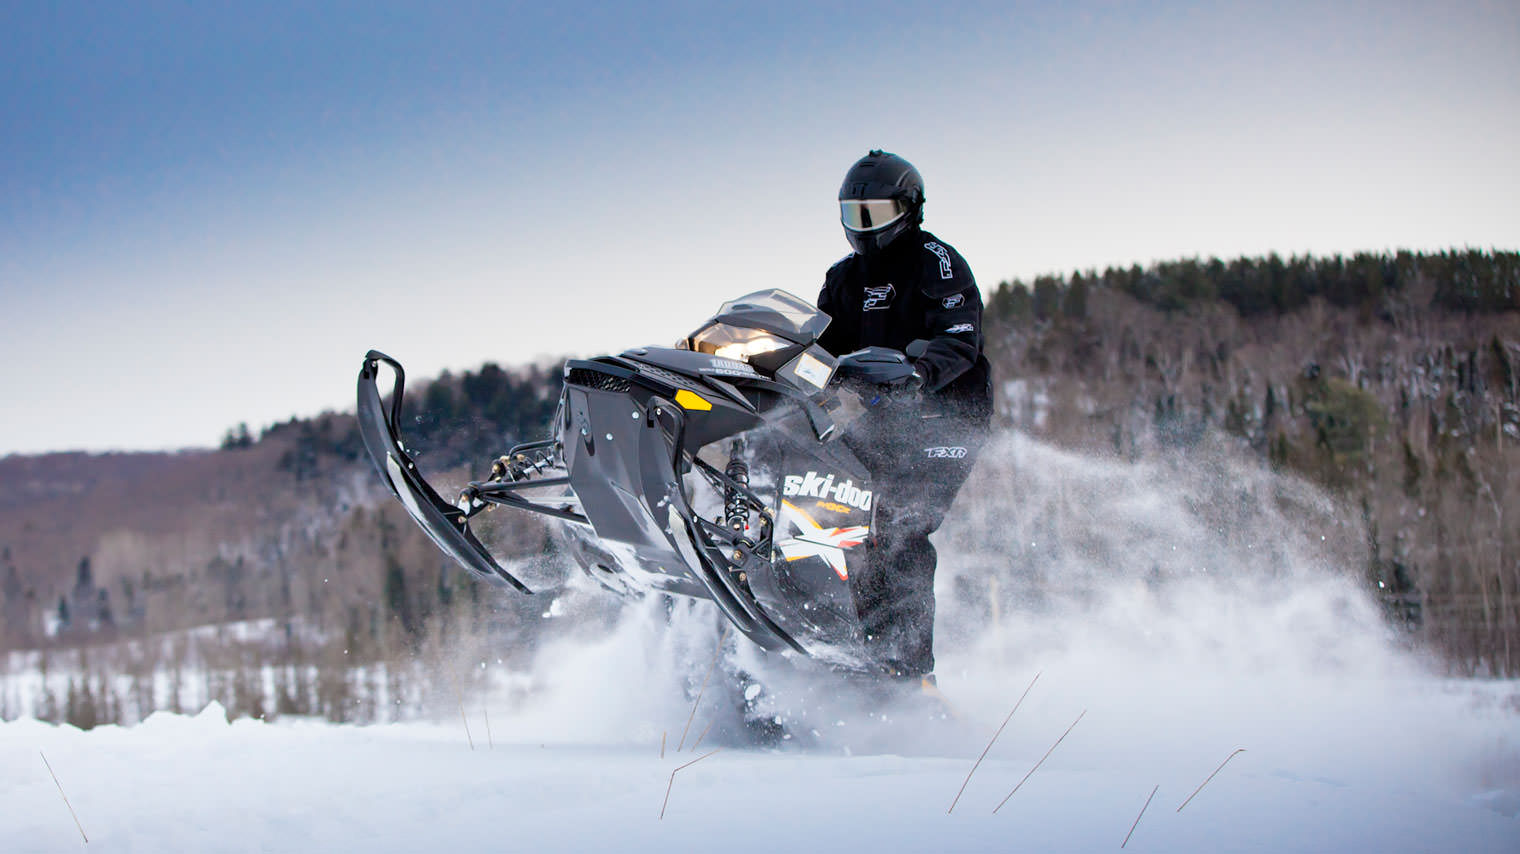 Snowmobile Rentals - Snowmobiling Rentals Ontario - Snowmobile for Rent